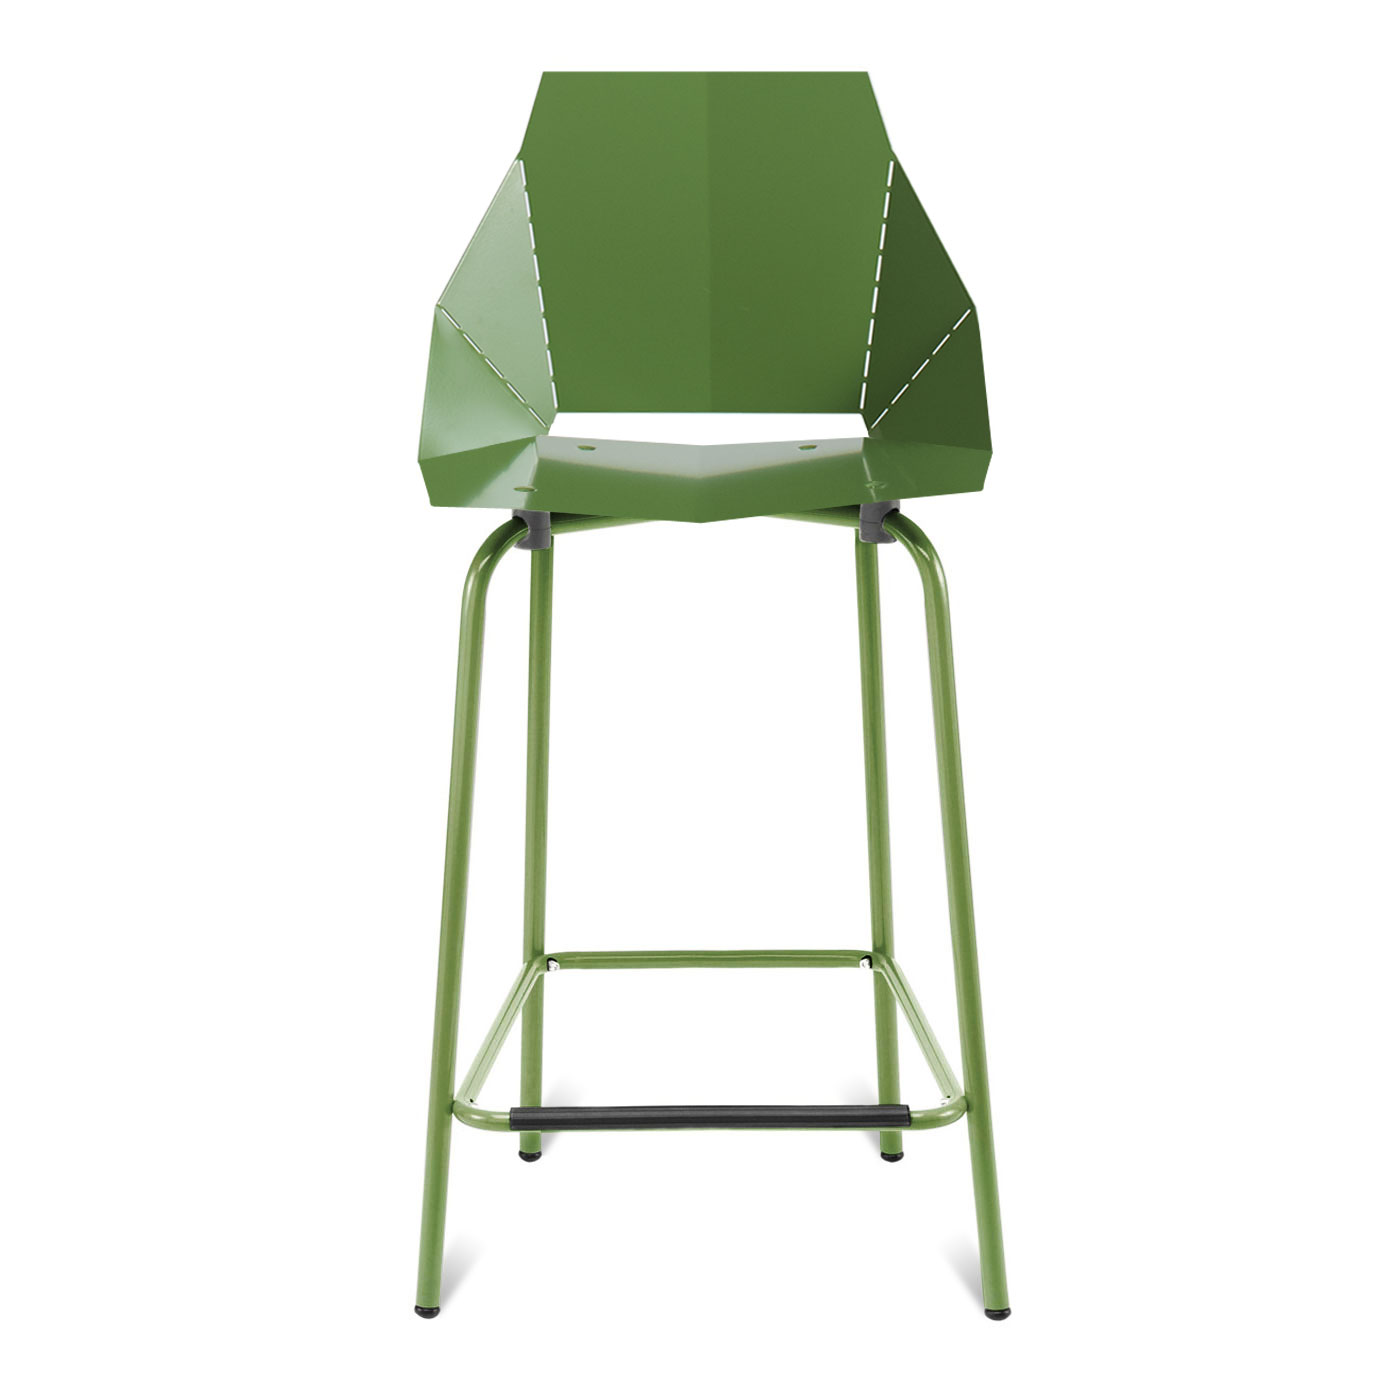 Real good modern counterstool